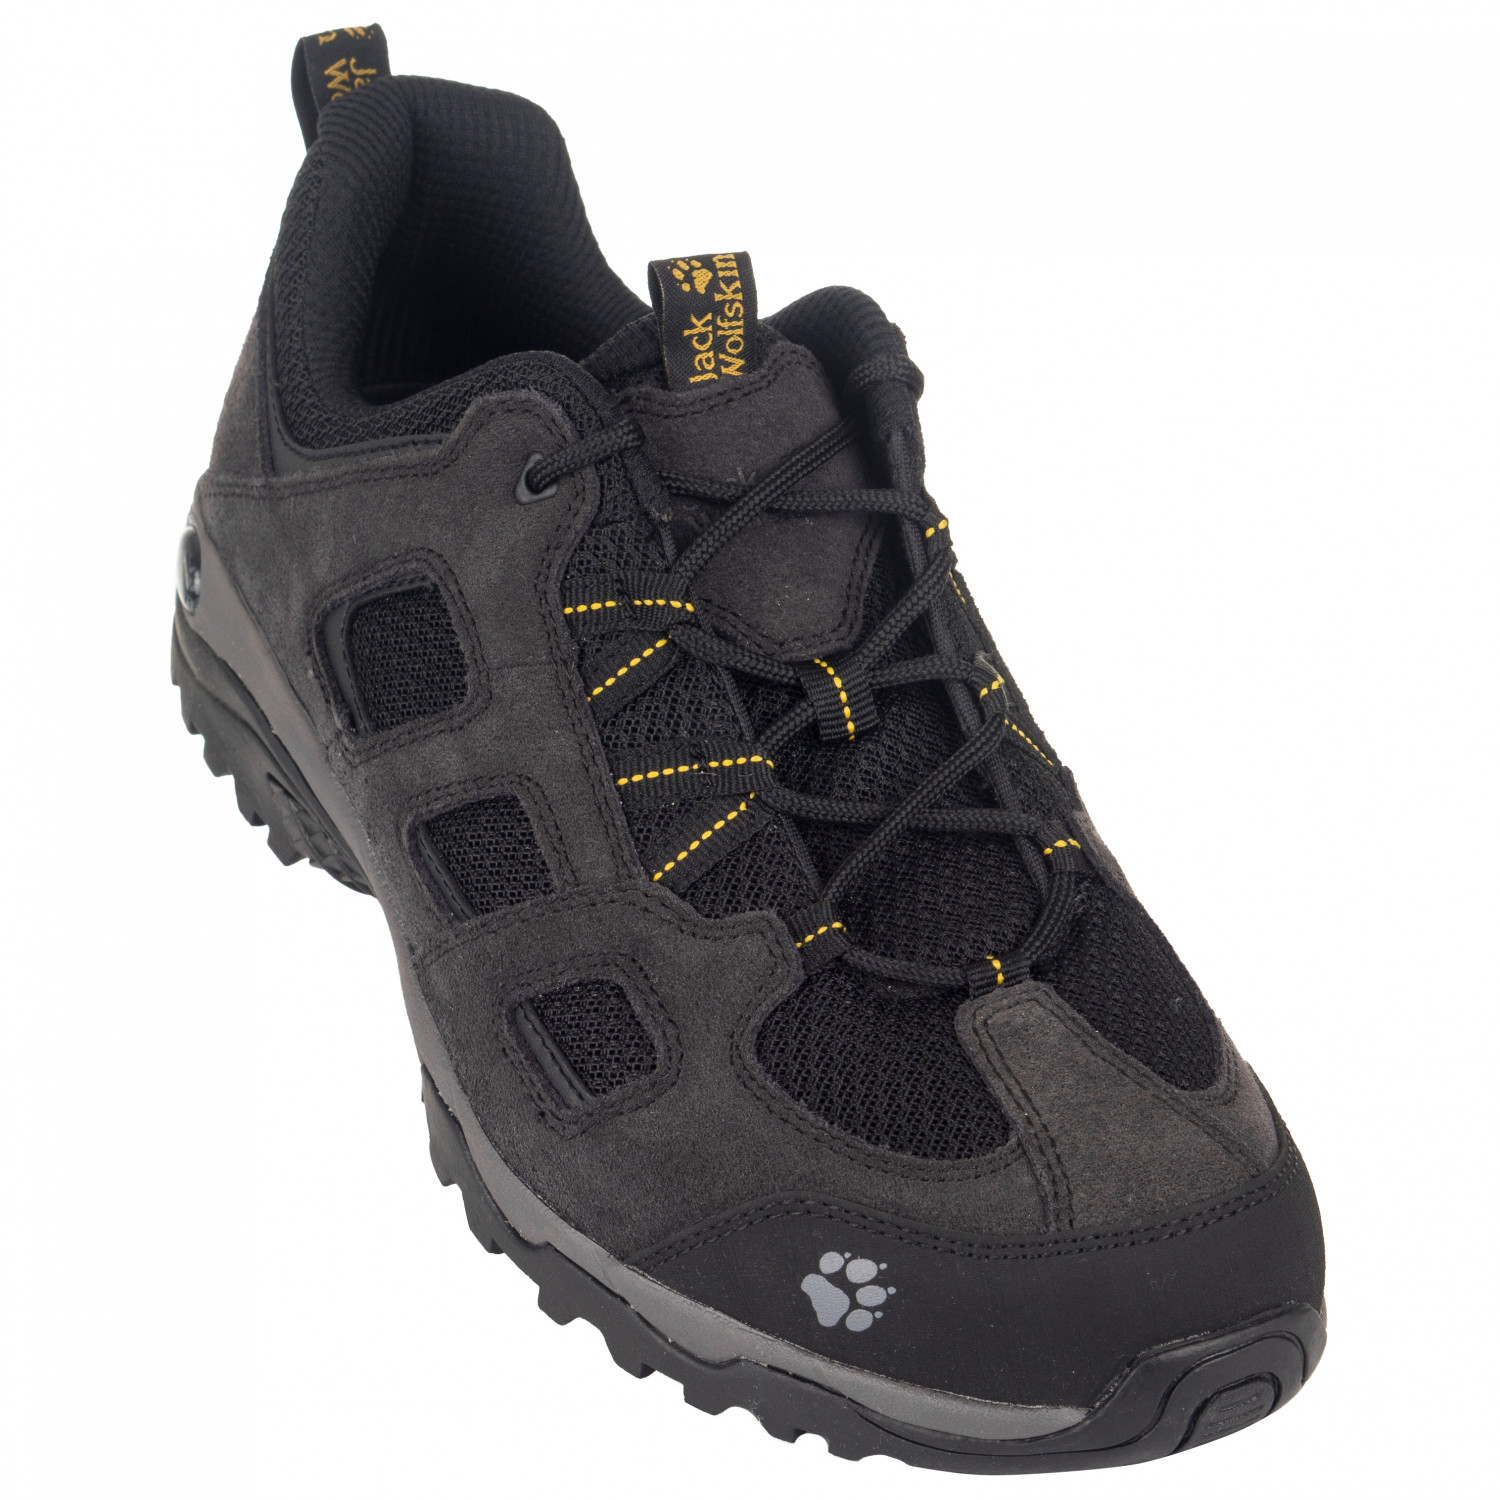 9df18f01734ea8 Jack Wolfskin Vojo Hike 2 Low - Multisport Shoes Men s